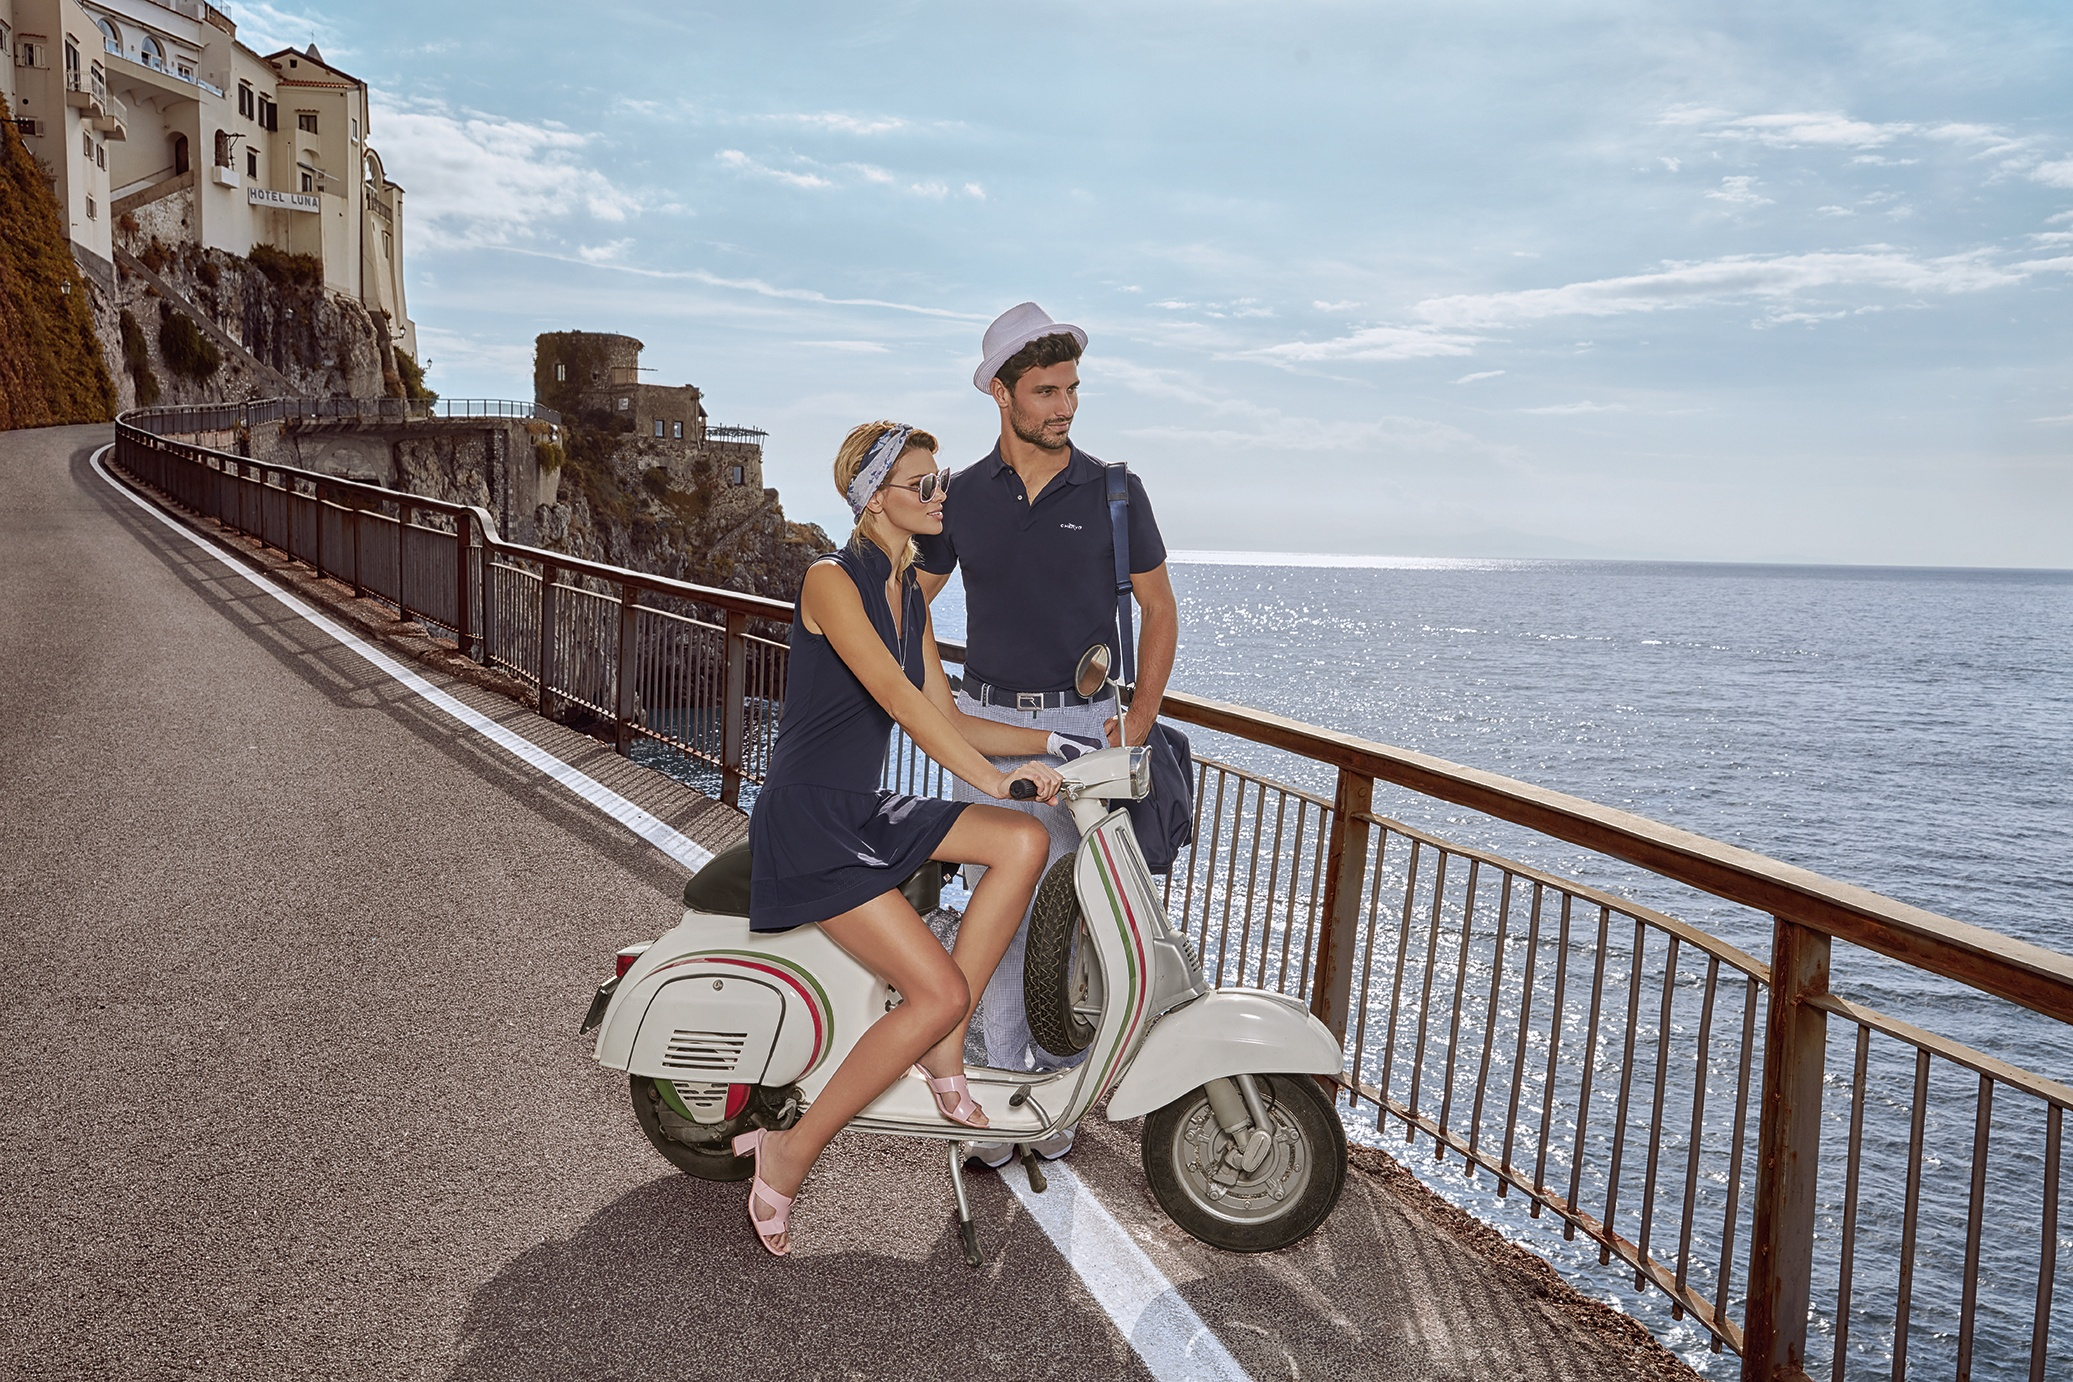 ITALIAN JOURNEY: CHIC & TECH IN AMALFI COAST